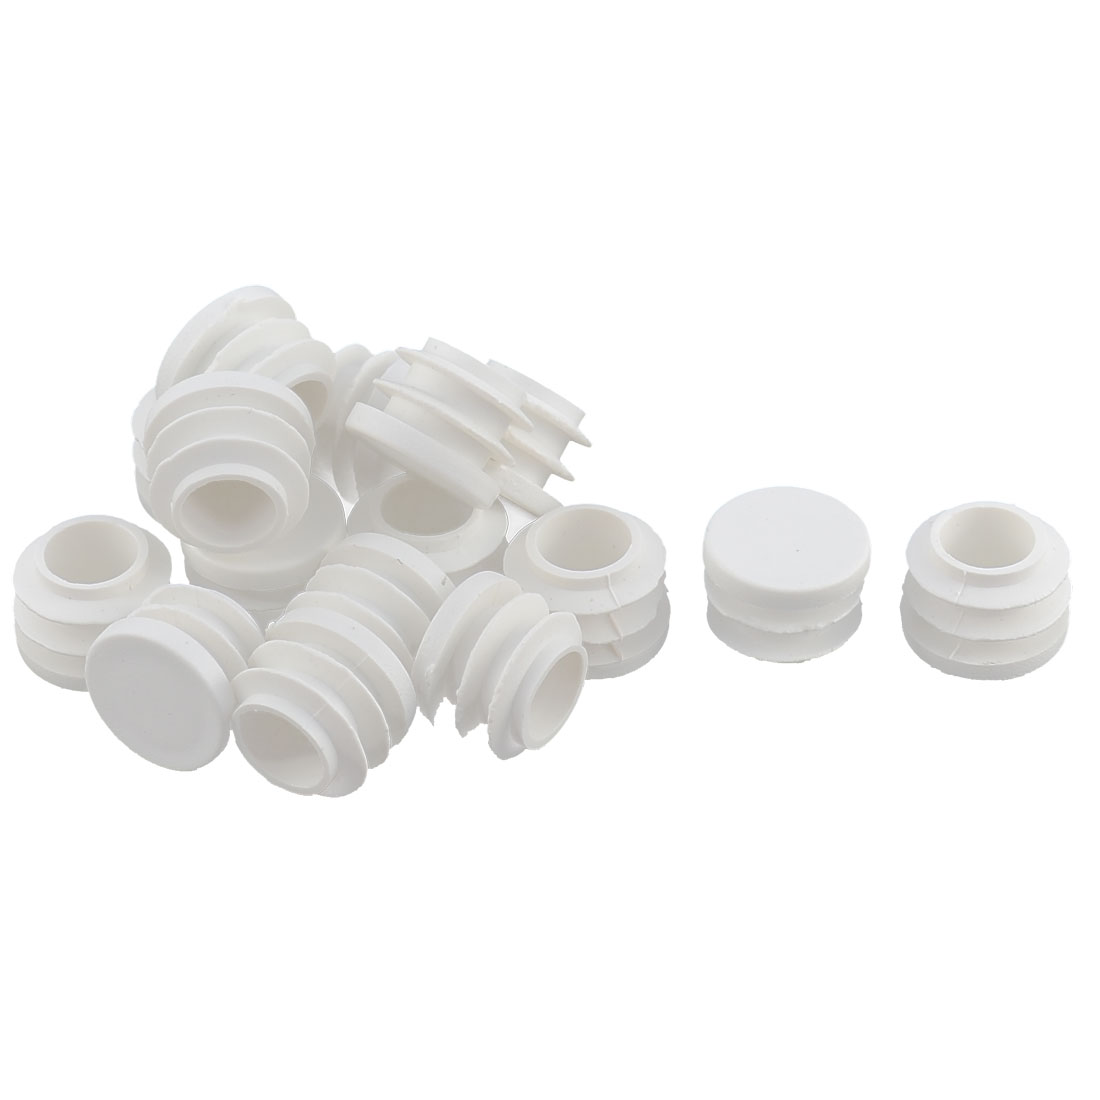 Desk Legs Plastic Round Tube Pipe Inserts End Blanking Caps White 16pcs